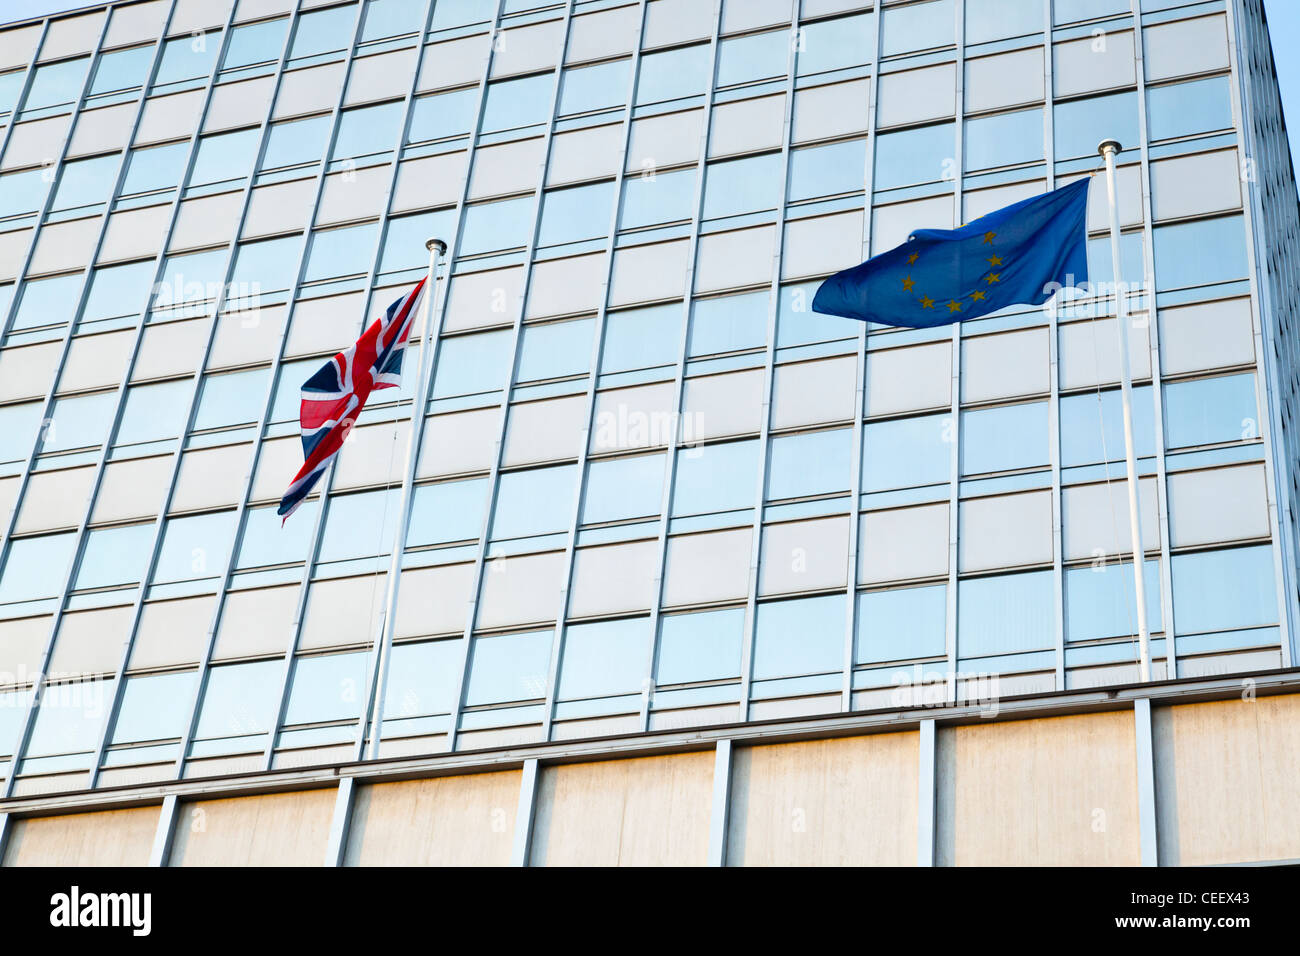 UK flag and EU flag flying together. Union Jack and the European Union flags flying outside offices in Nottingham, - Stock Image